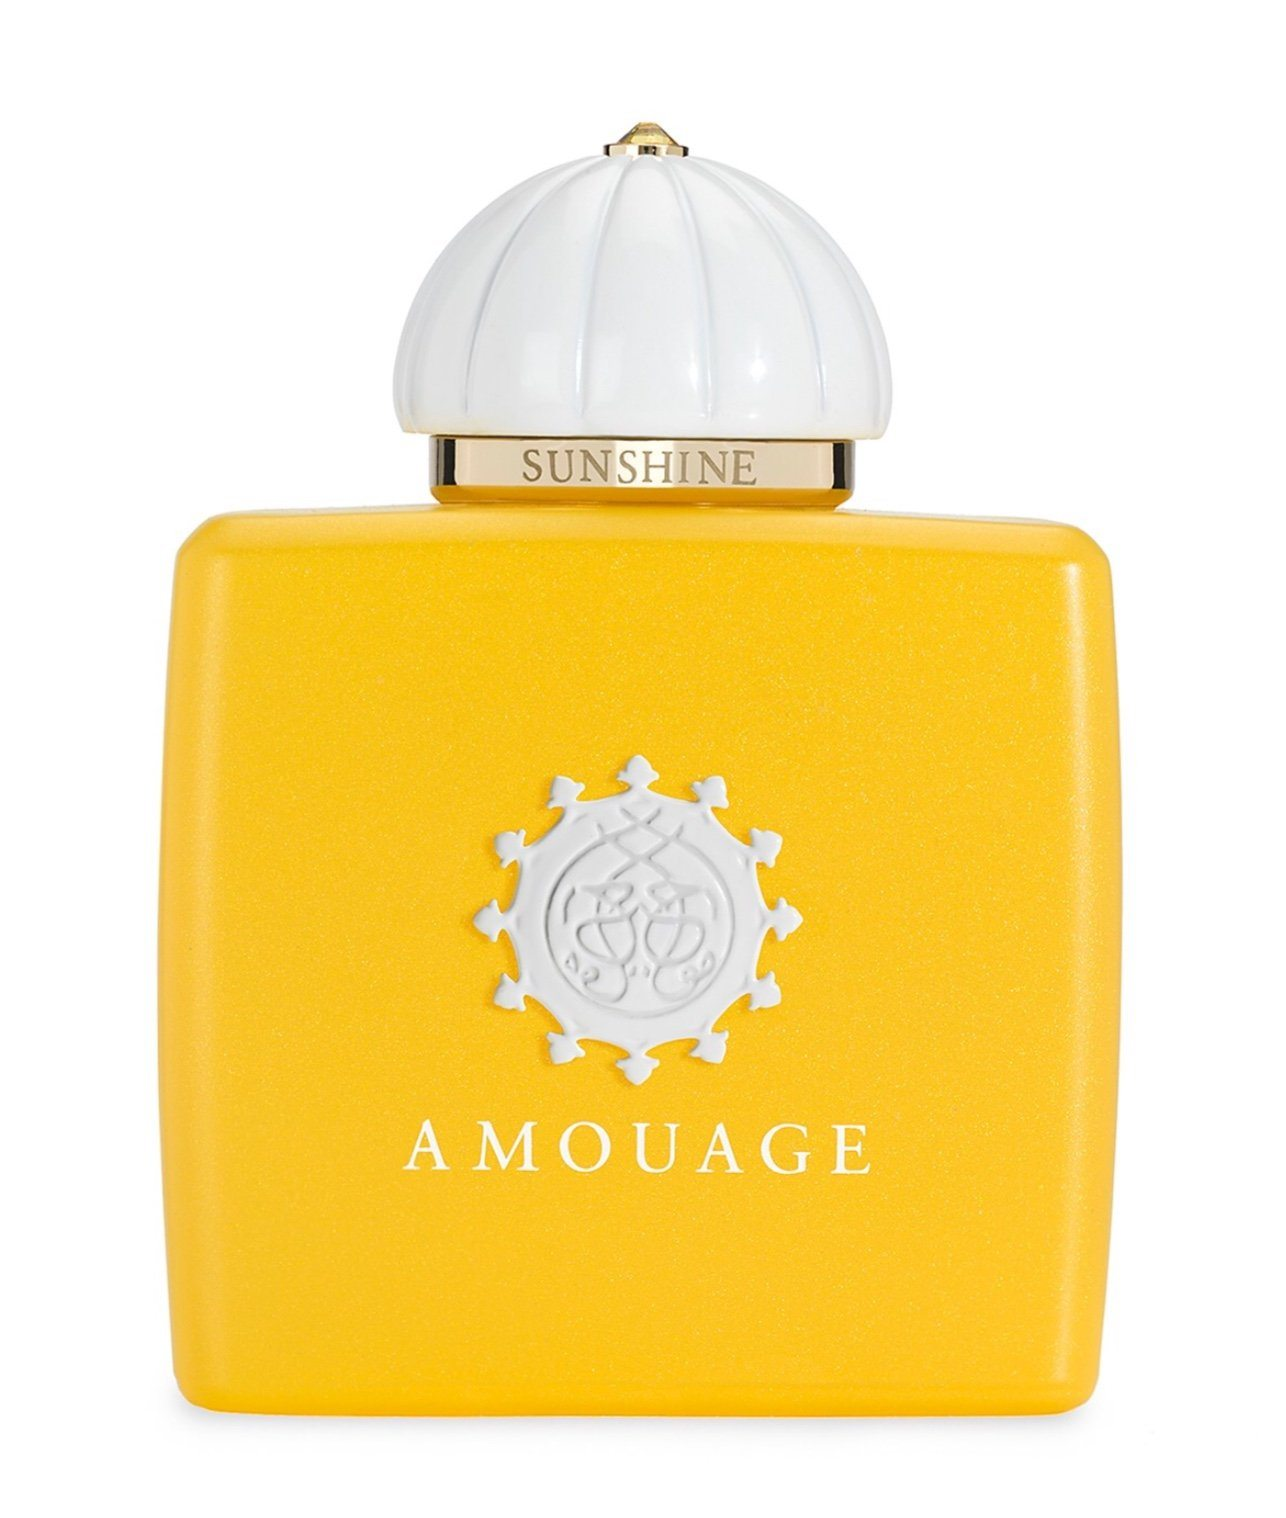 Amouage Sunshine Woman Eau de Parfum 3.4 fl oz.